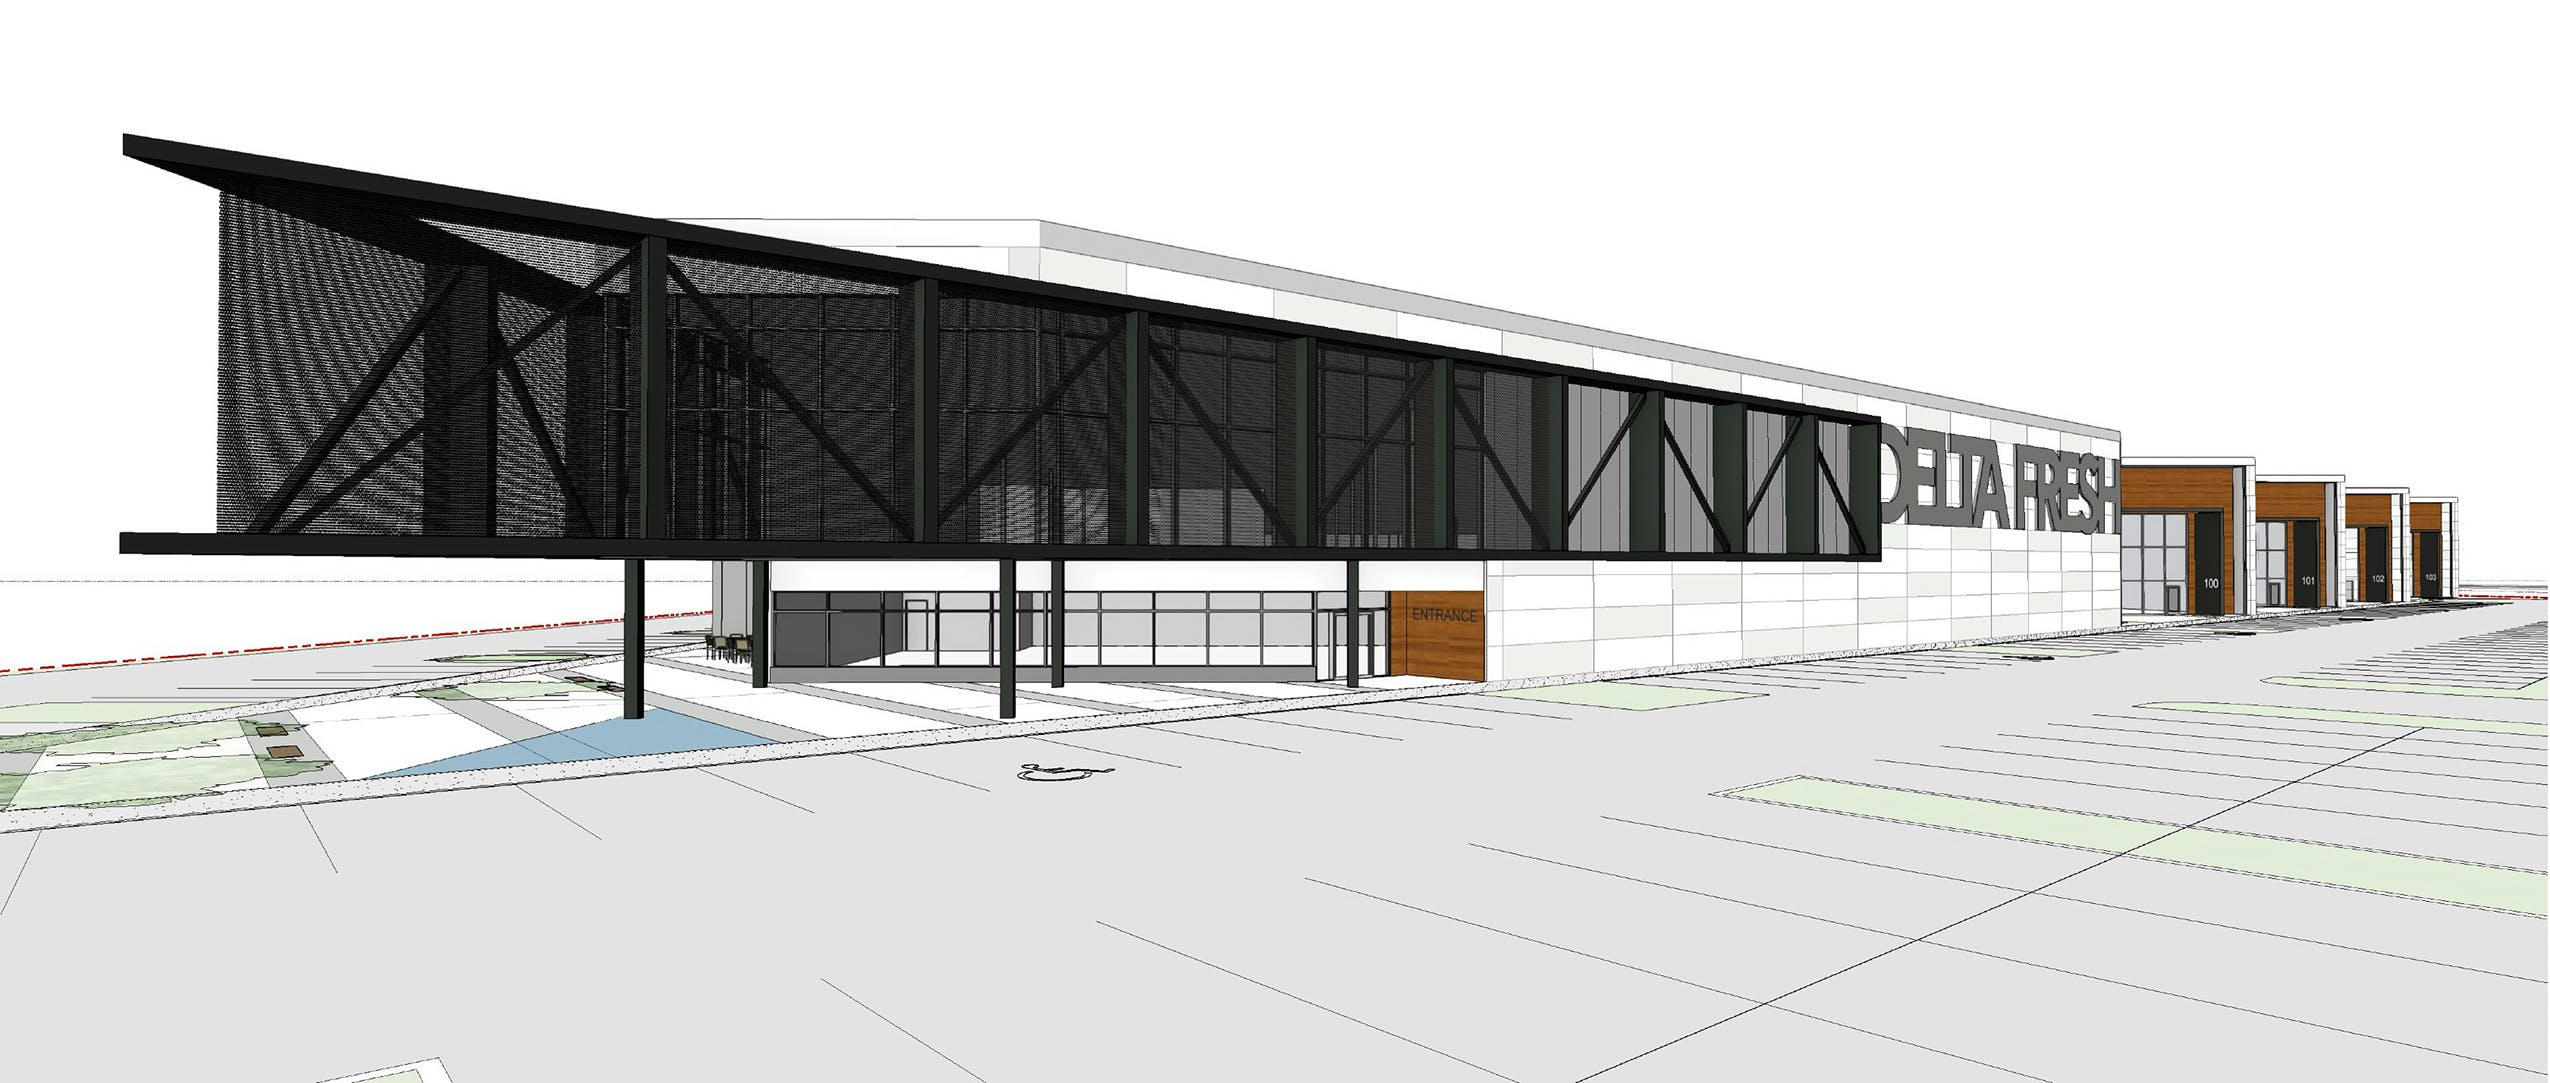 Rendering from 64 Avenue (East) - Food Storage Building